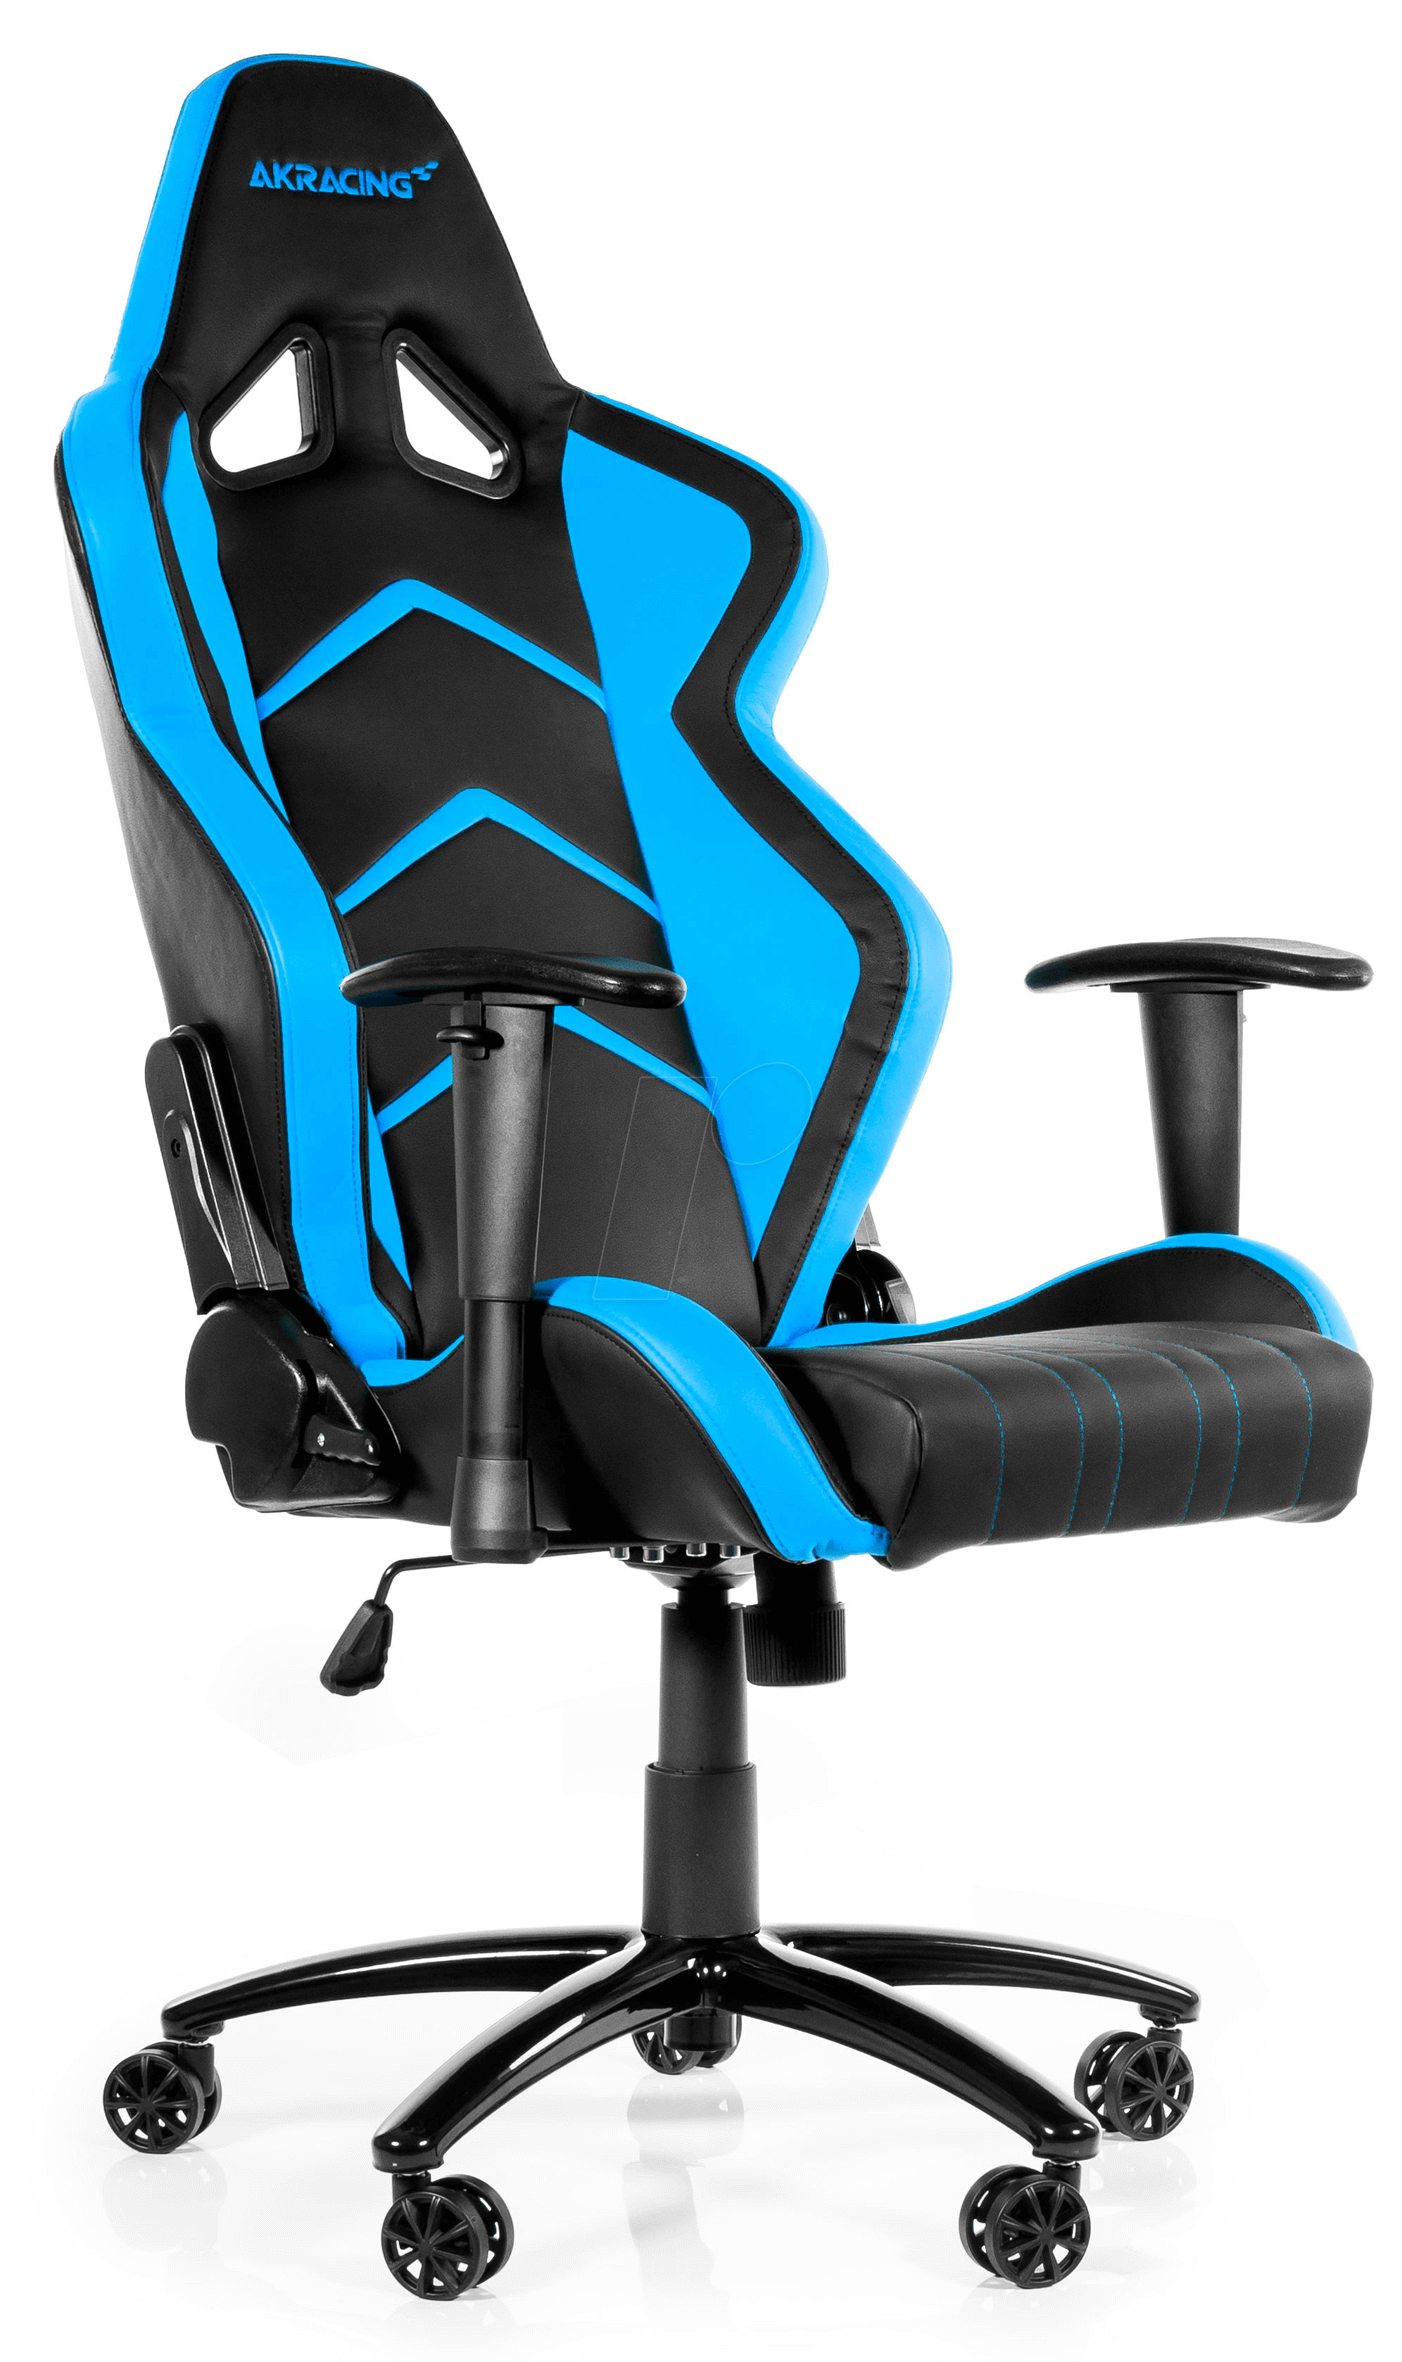 Image Result For Gaming Chair Vergleich